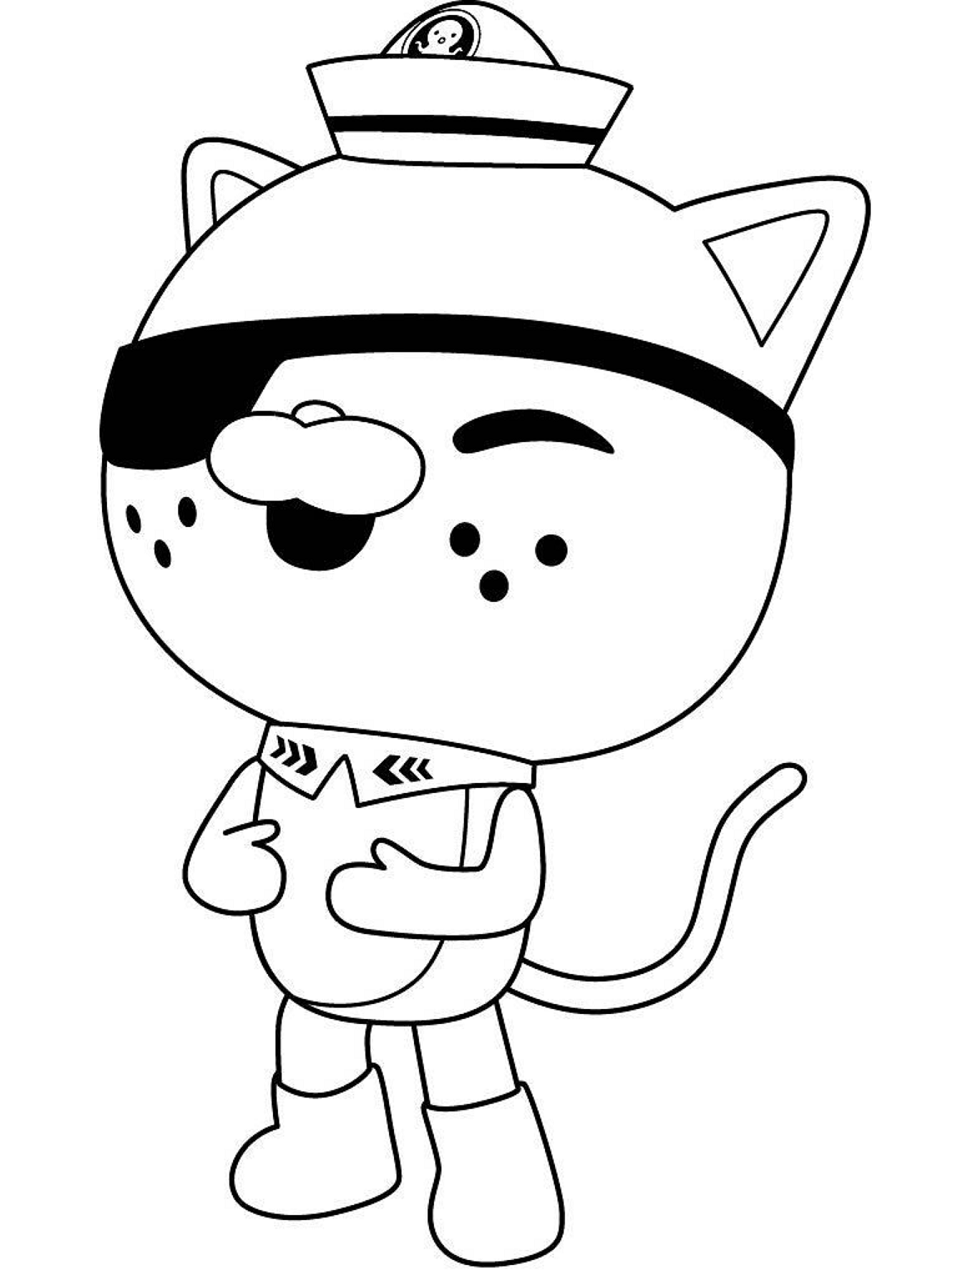 Happy Kwazii Page Coloring Pages Coloring Books Coloring Pages For Kids